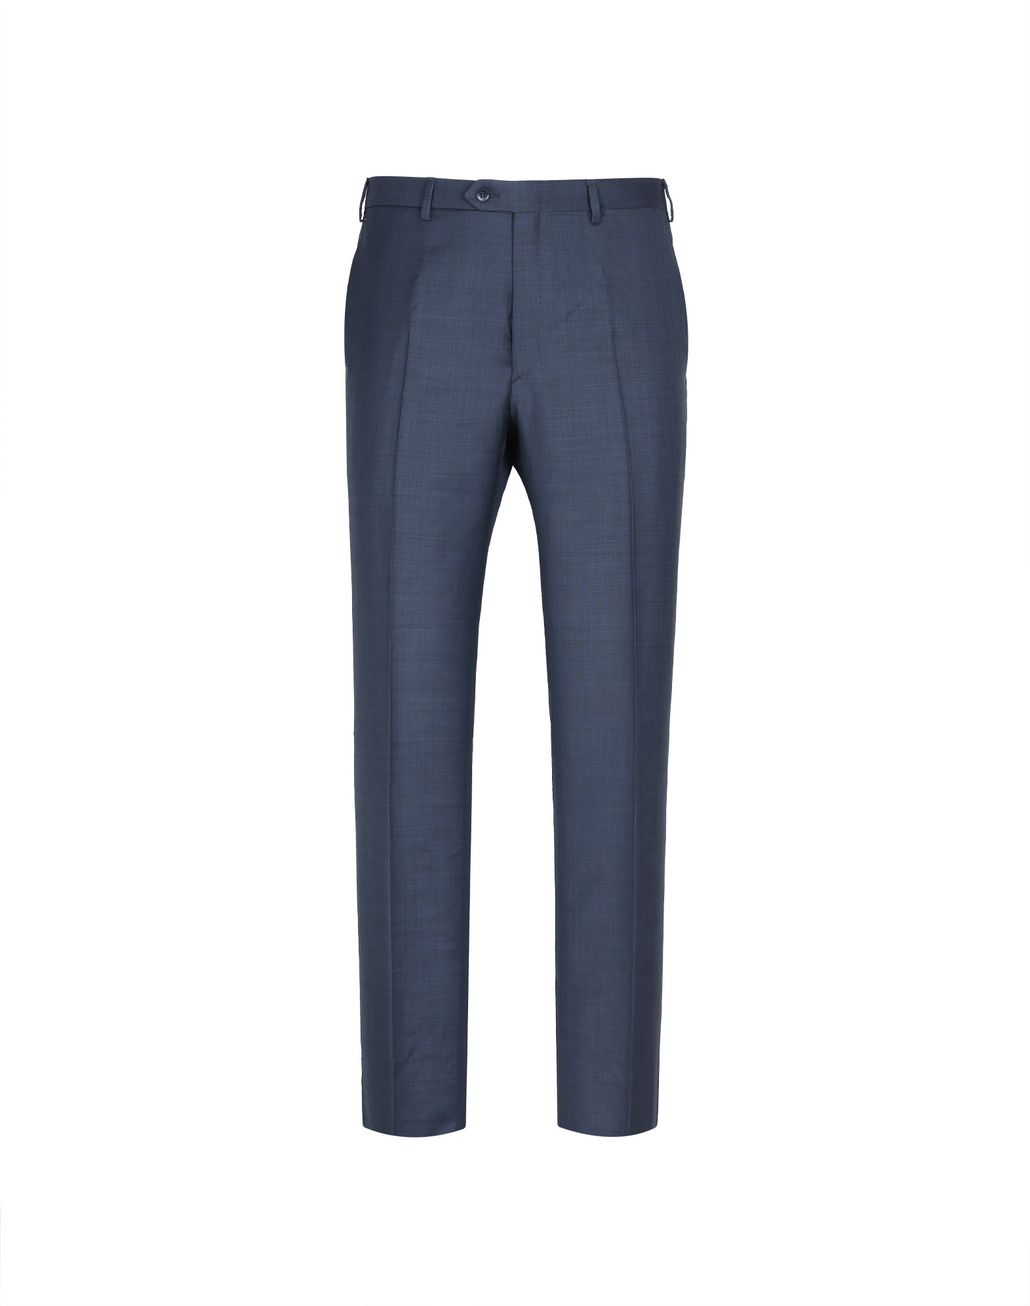 BRIONI Navy Blue Tigullio Trousers Trousers [*** pickupInStoreShippingNotGuaranteed_info ***] f